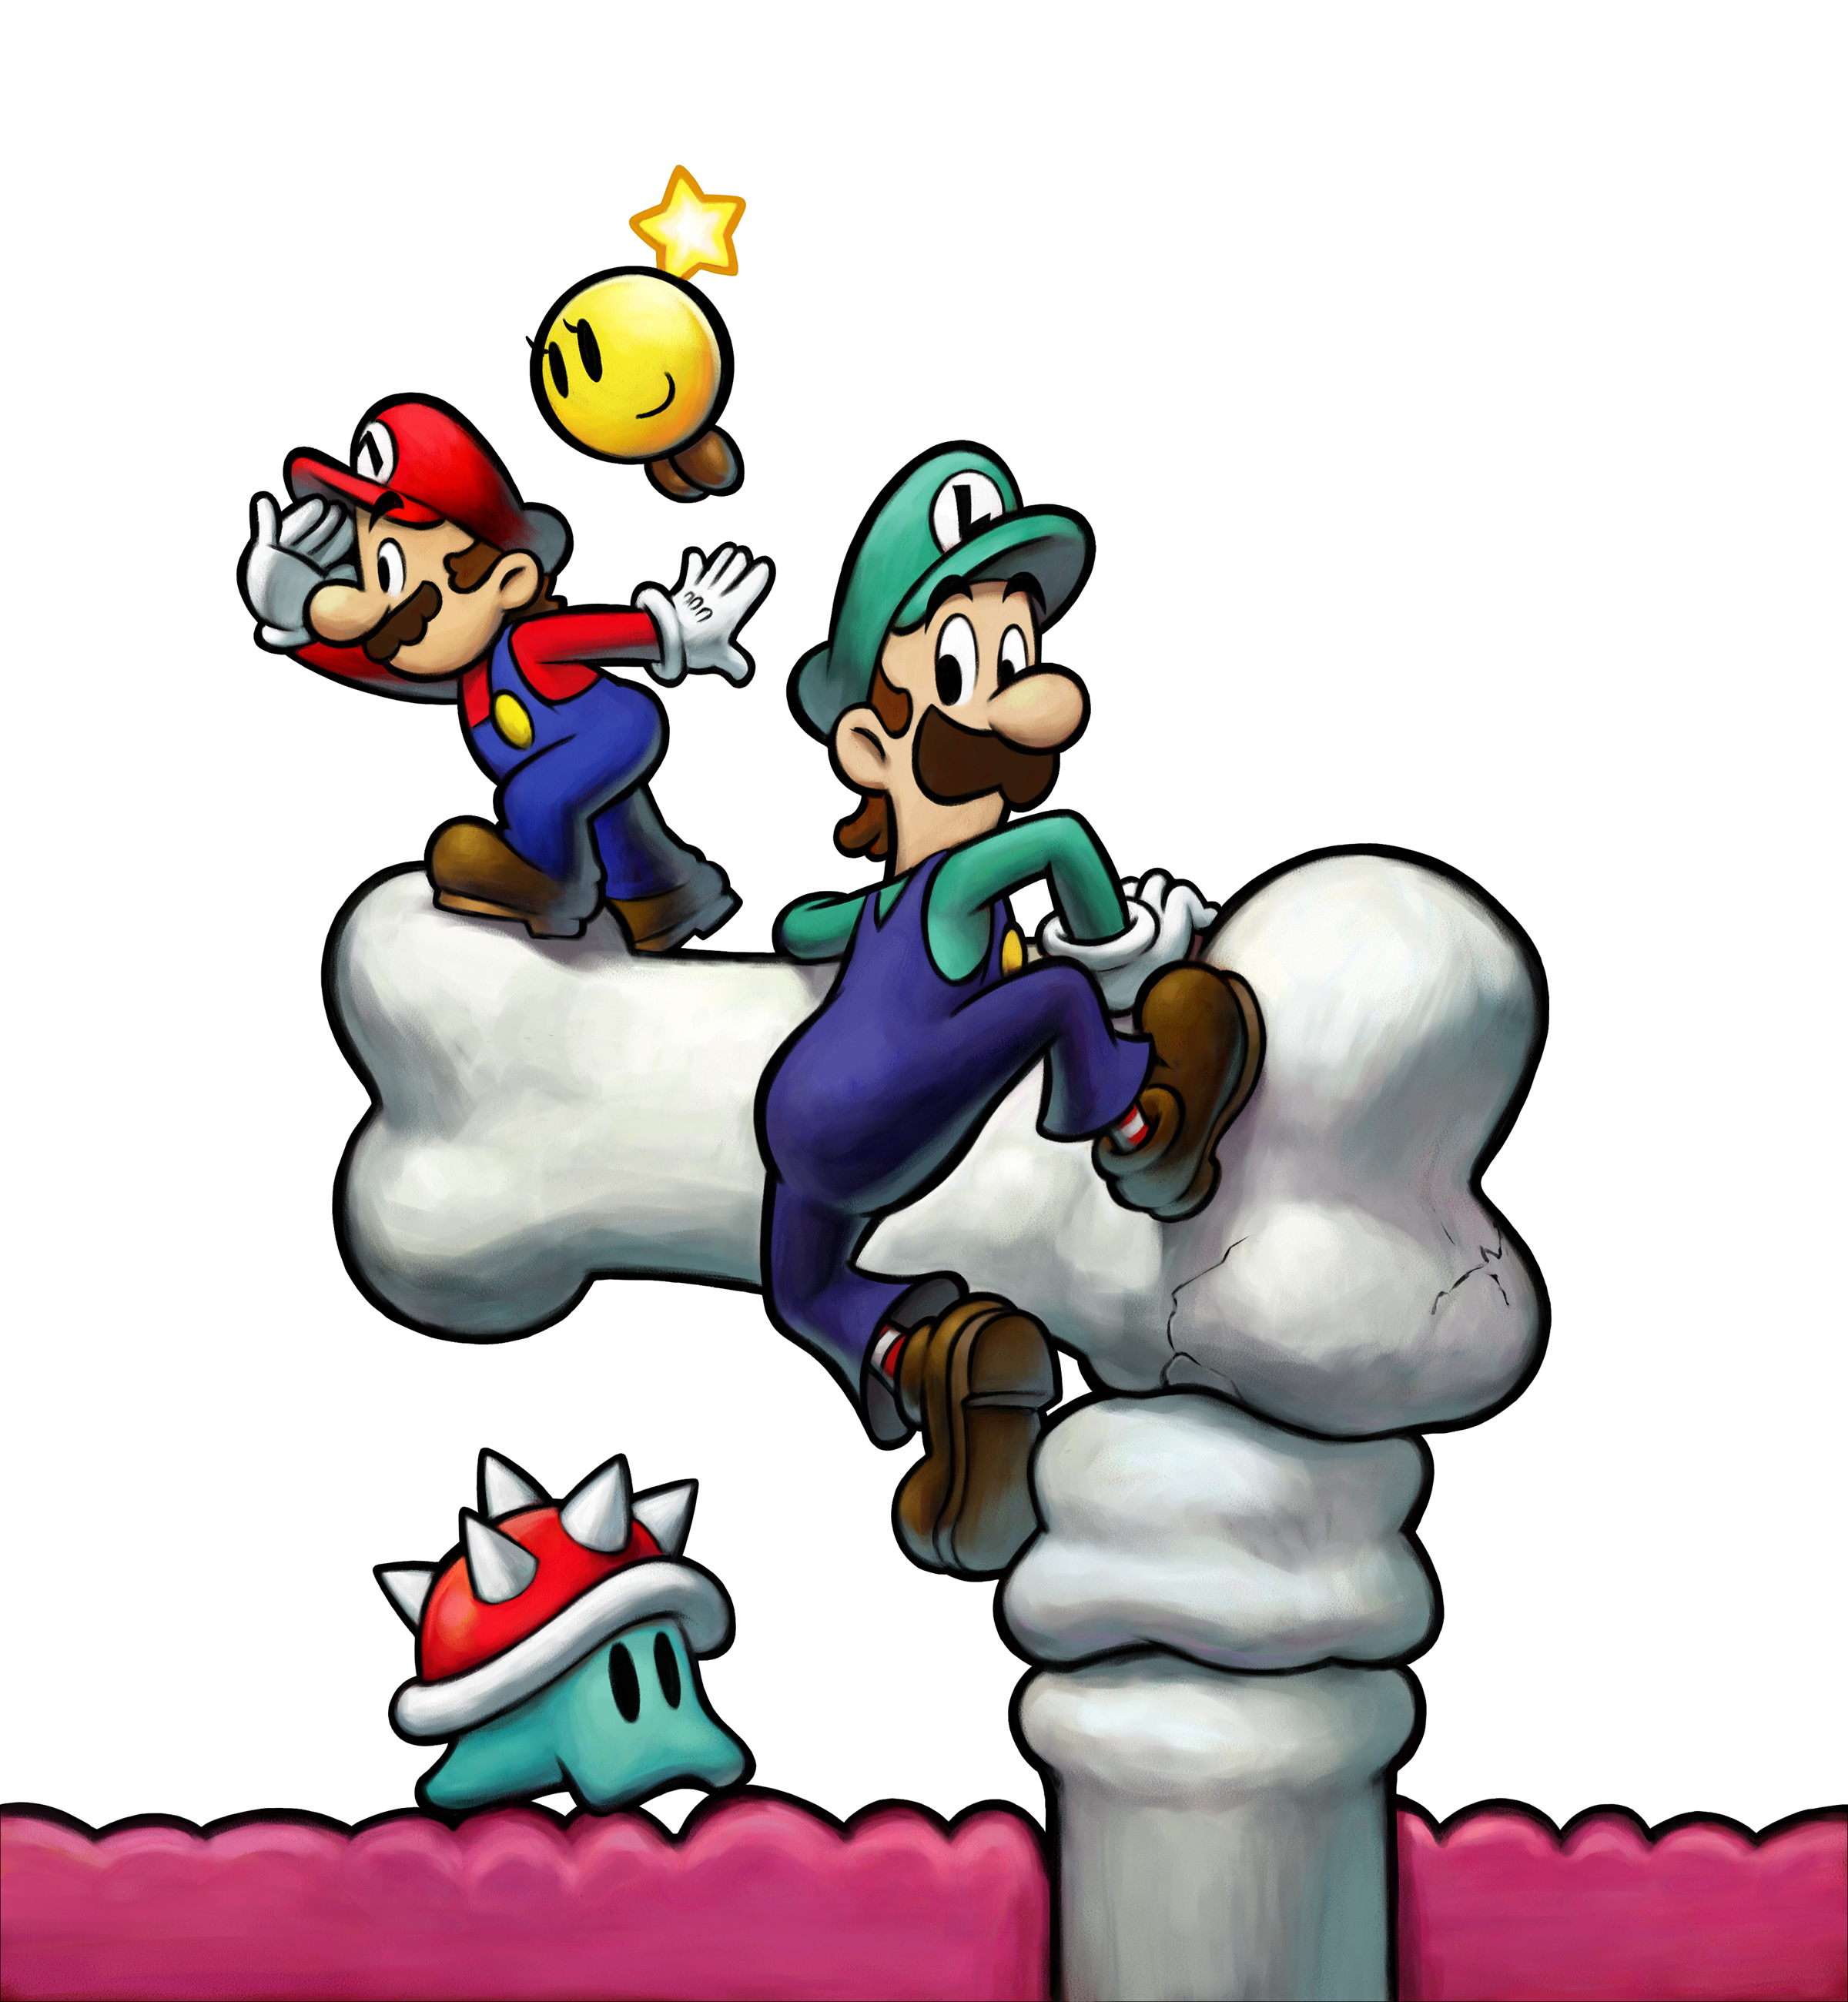 mario and luigi bowsers inside story rom working